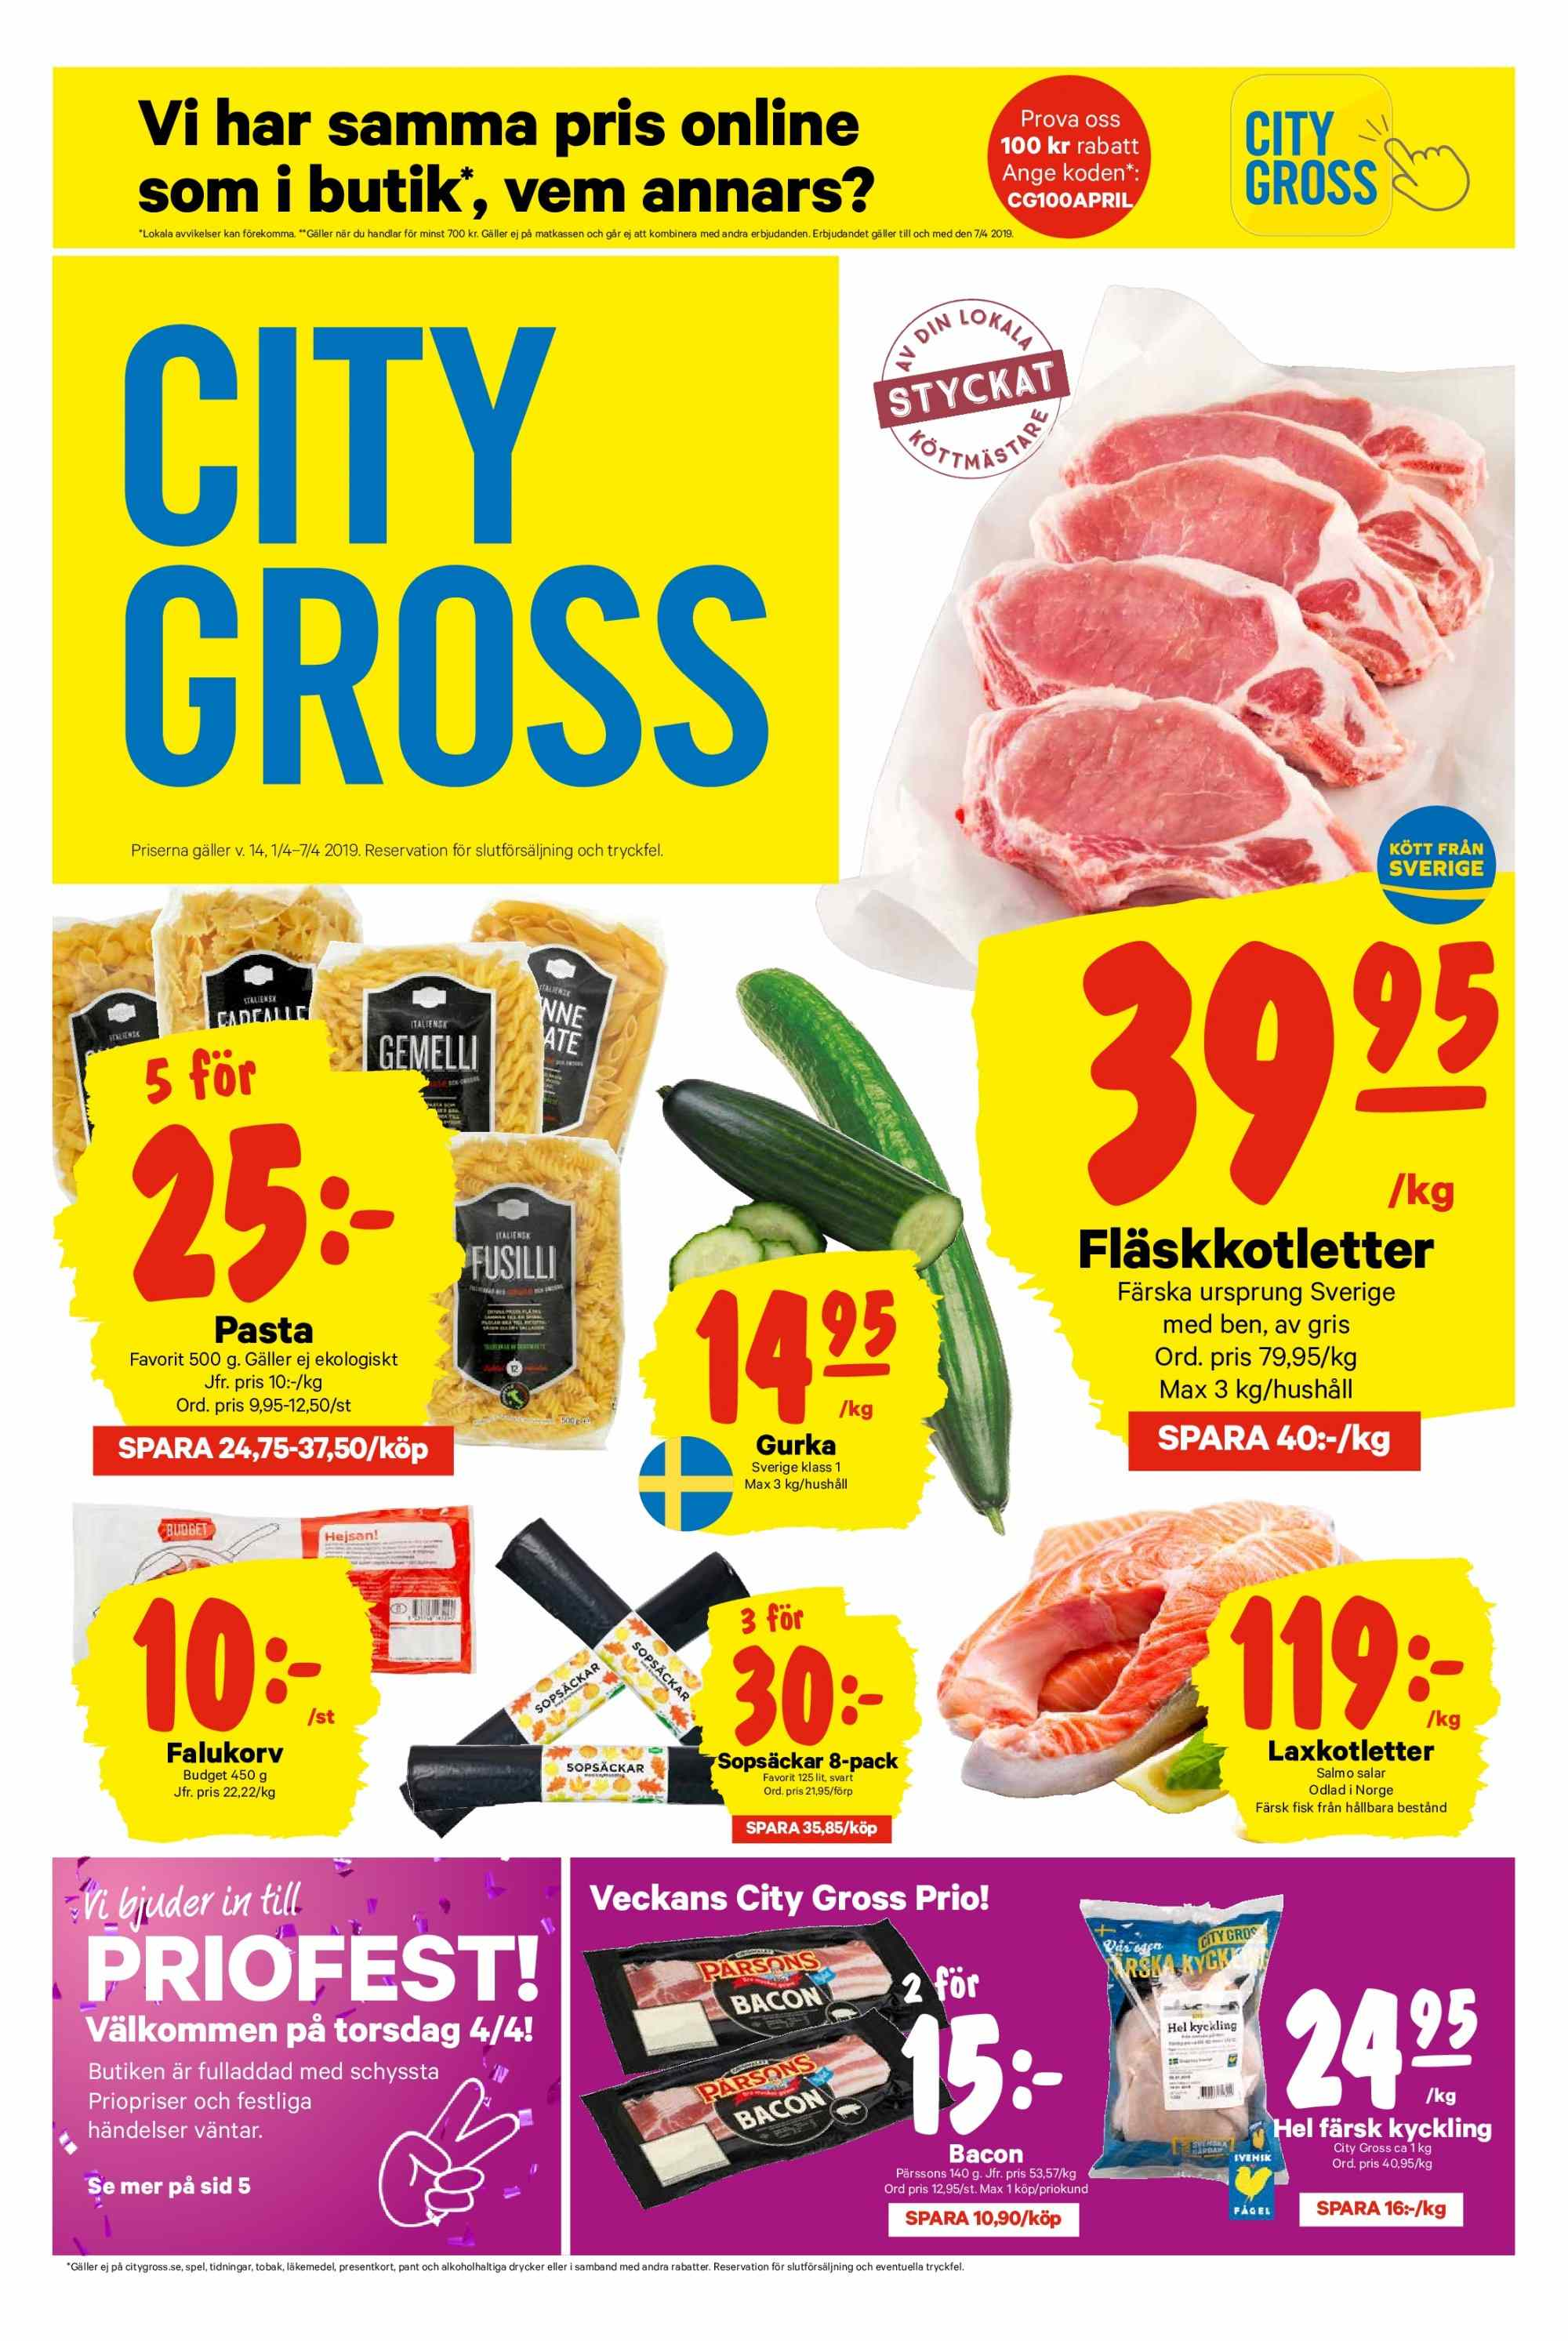 City Gross reklamblad - 1/4 2019 - 7/4 2019. Sida 1.